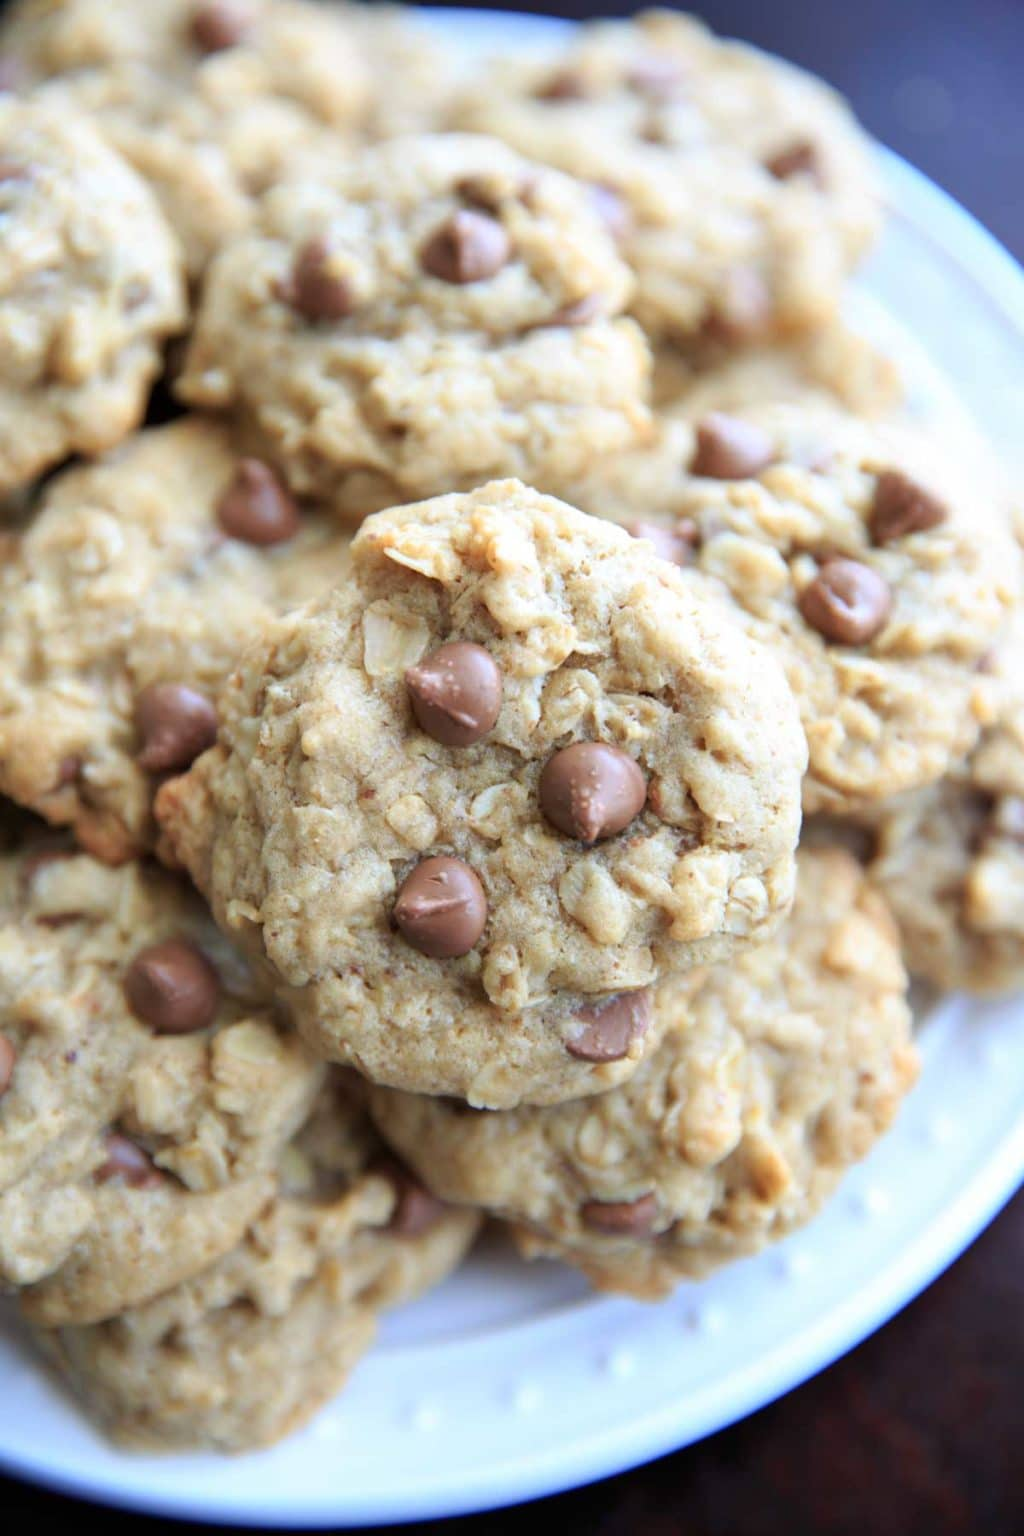 Lactation cookies with chocolate chips, oats, brewers yeast and flax meal.